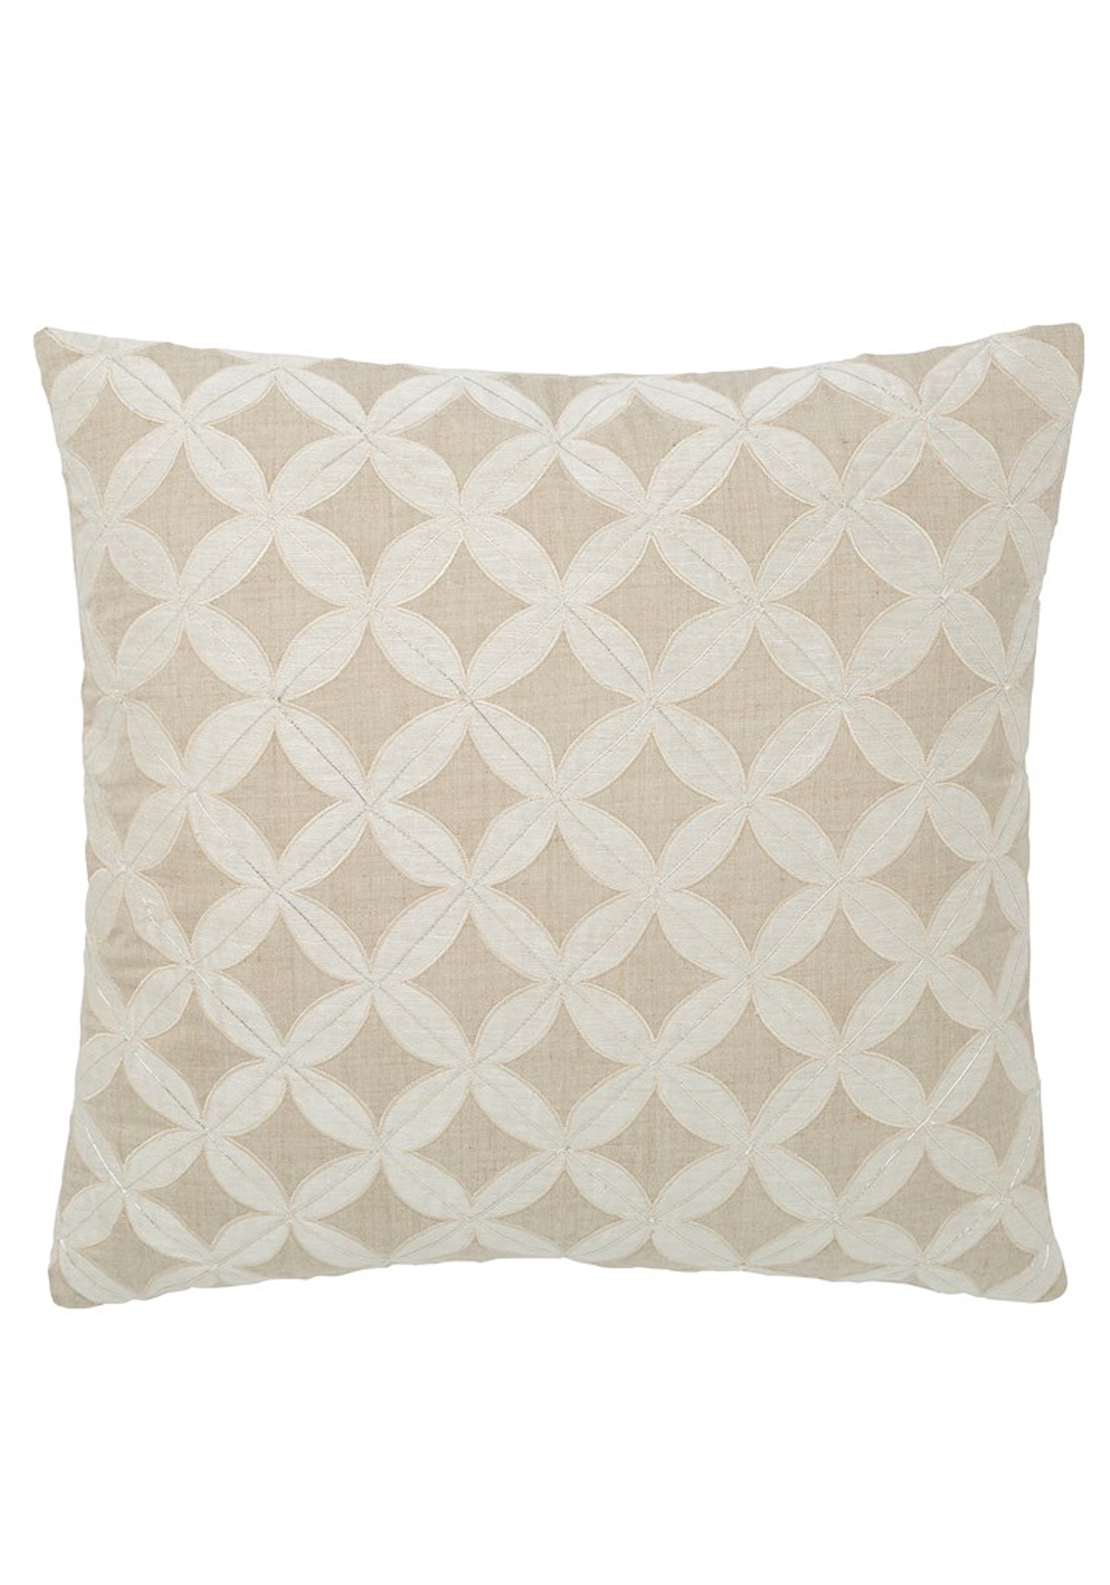 Fable Isla Linen Cushion, 40 x 40cm Beige